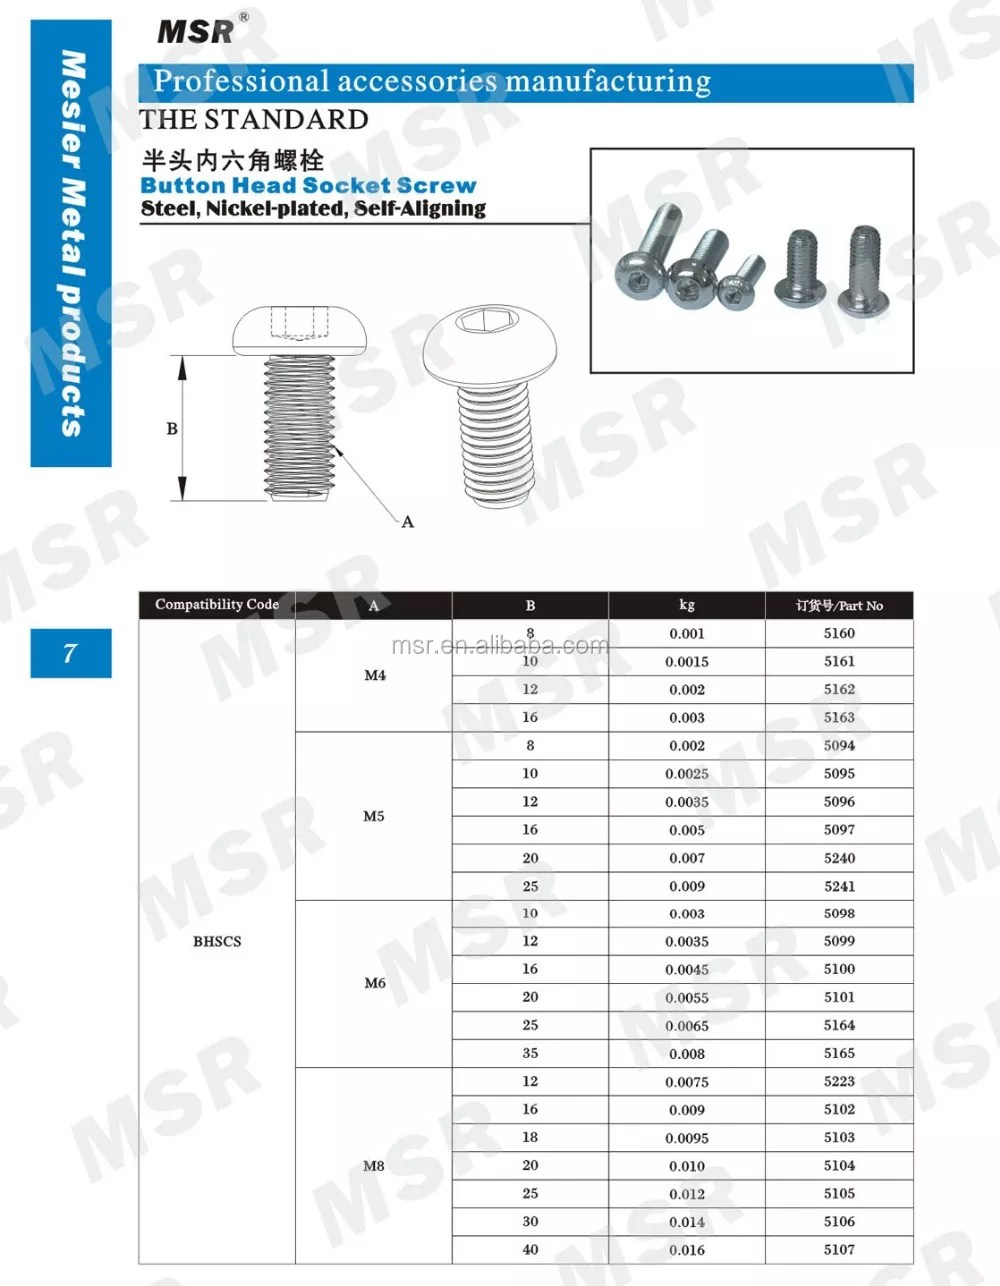 hight resolution of m4 8 10 12 16 button head socket screw hex bolt and